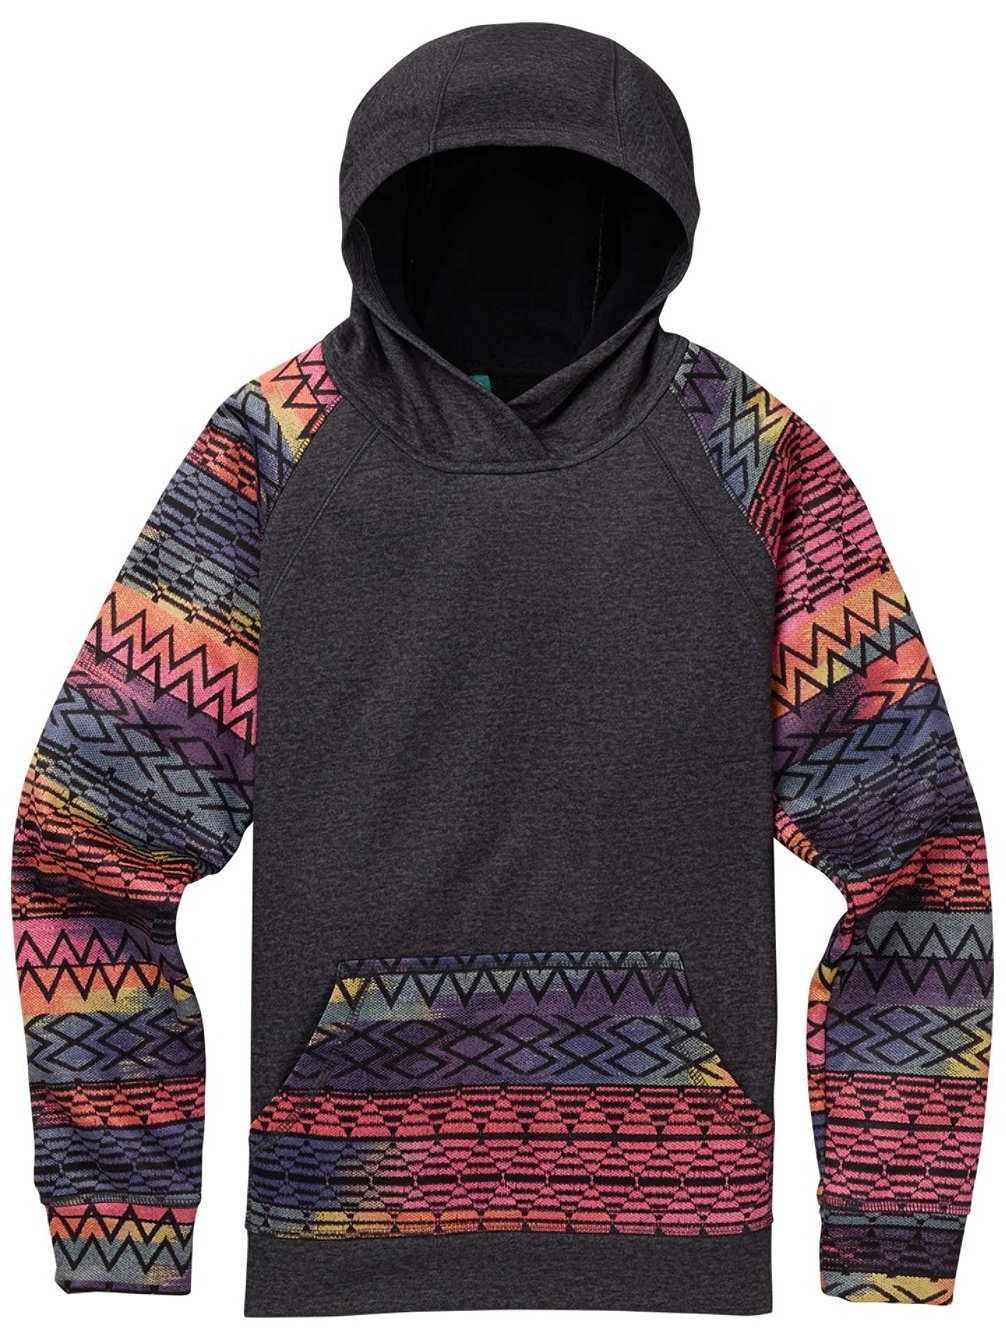 Burton Girls Crown Bonded Pull Over, Heather Black/Technicat Dream, Size Large (16)